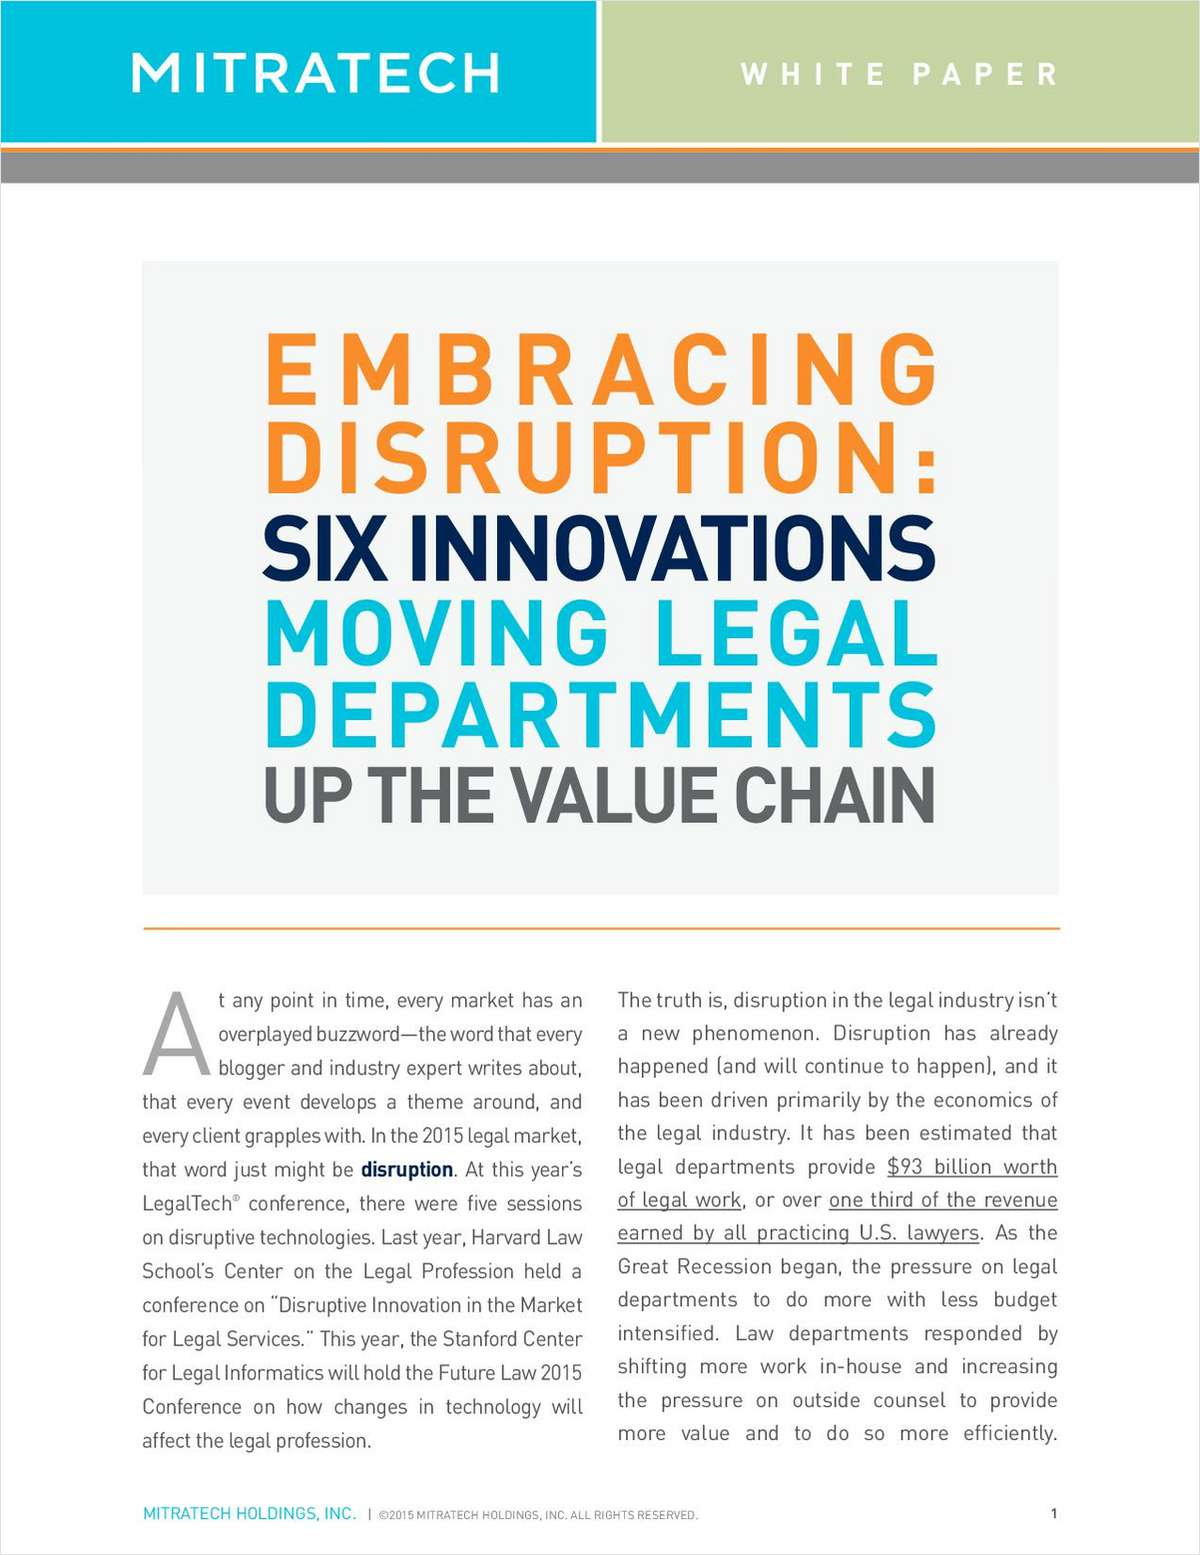 Embracing Disruption: Six Innovations Moving Legal Departments Up the Value Chain